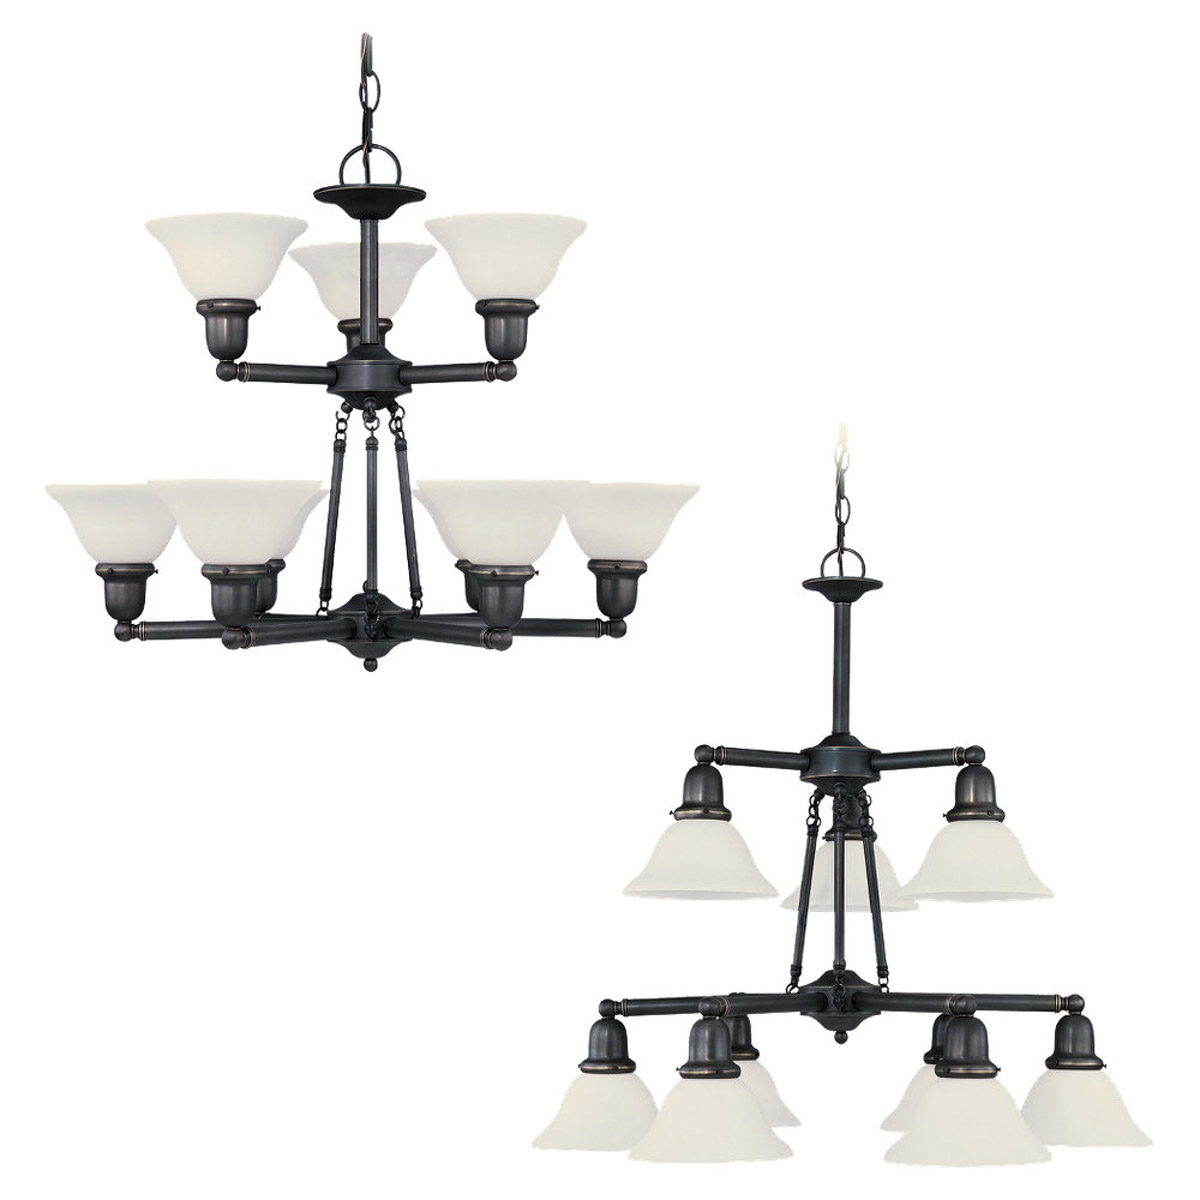 Sea Gull 39063BLE-782 Sussex 9 Light 30 inch Heirloom Bronze Chandelier Ceiling Light in Satin Etched Glass photo